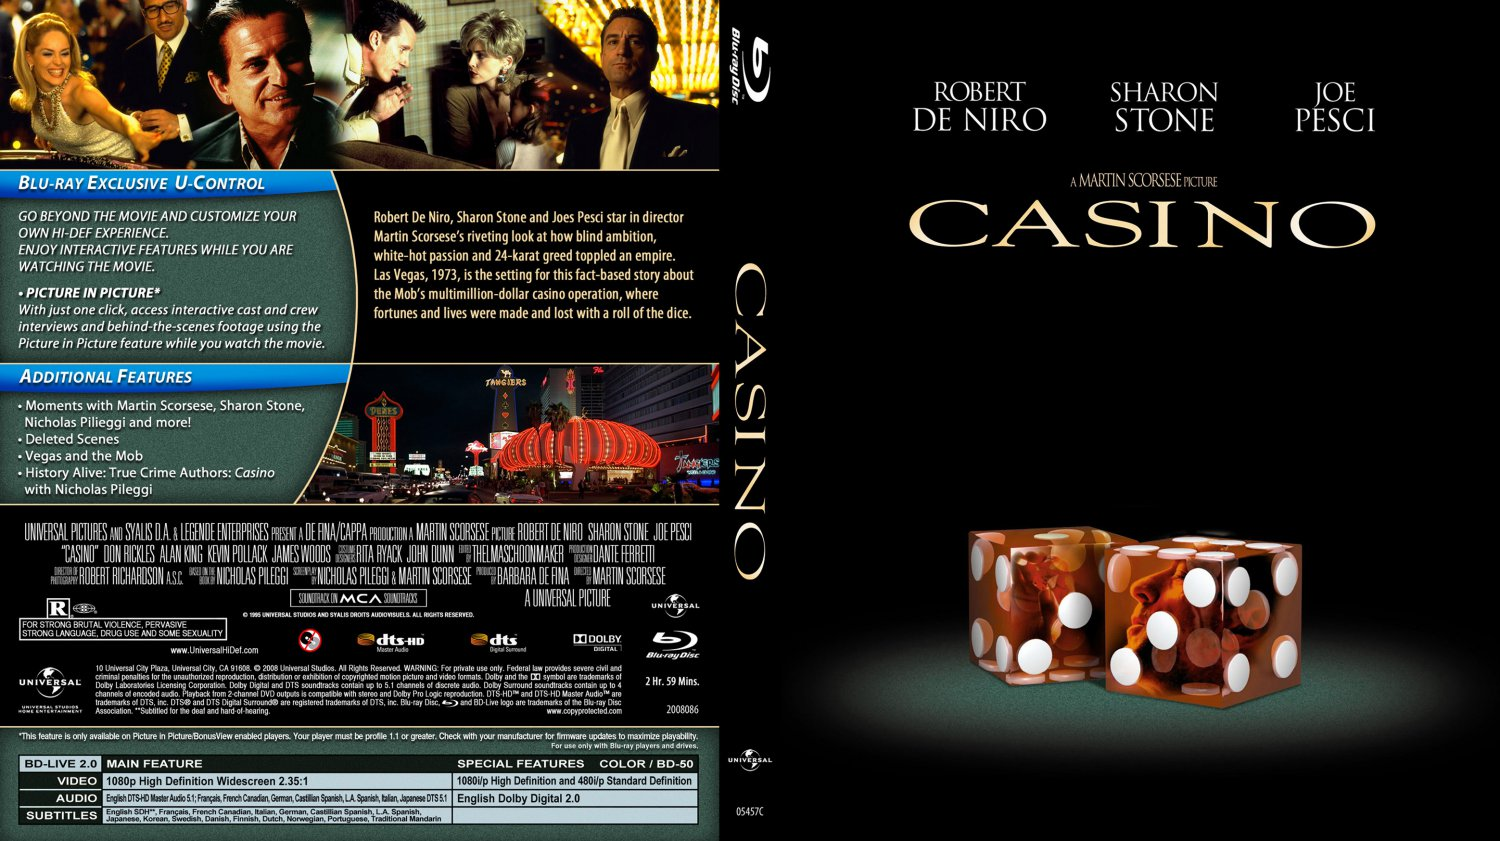 watch casino online free 1995 com spielen